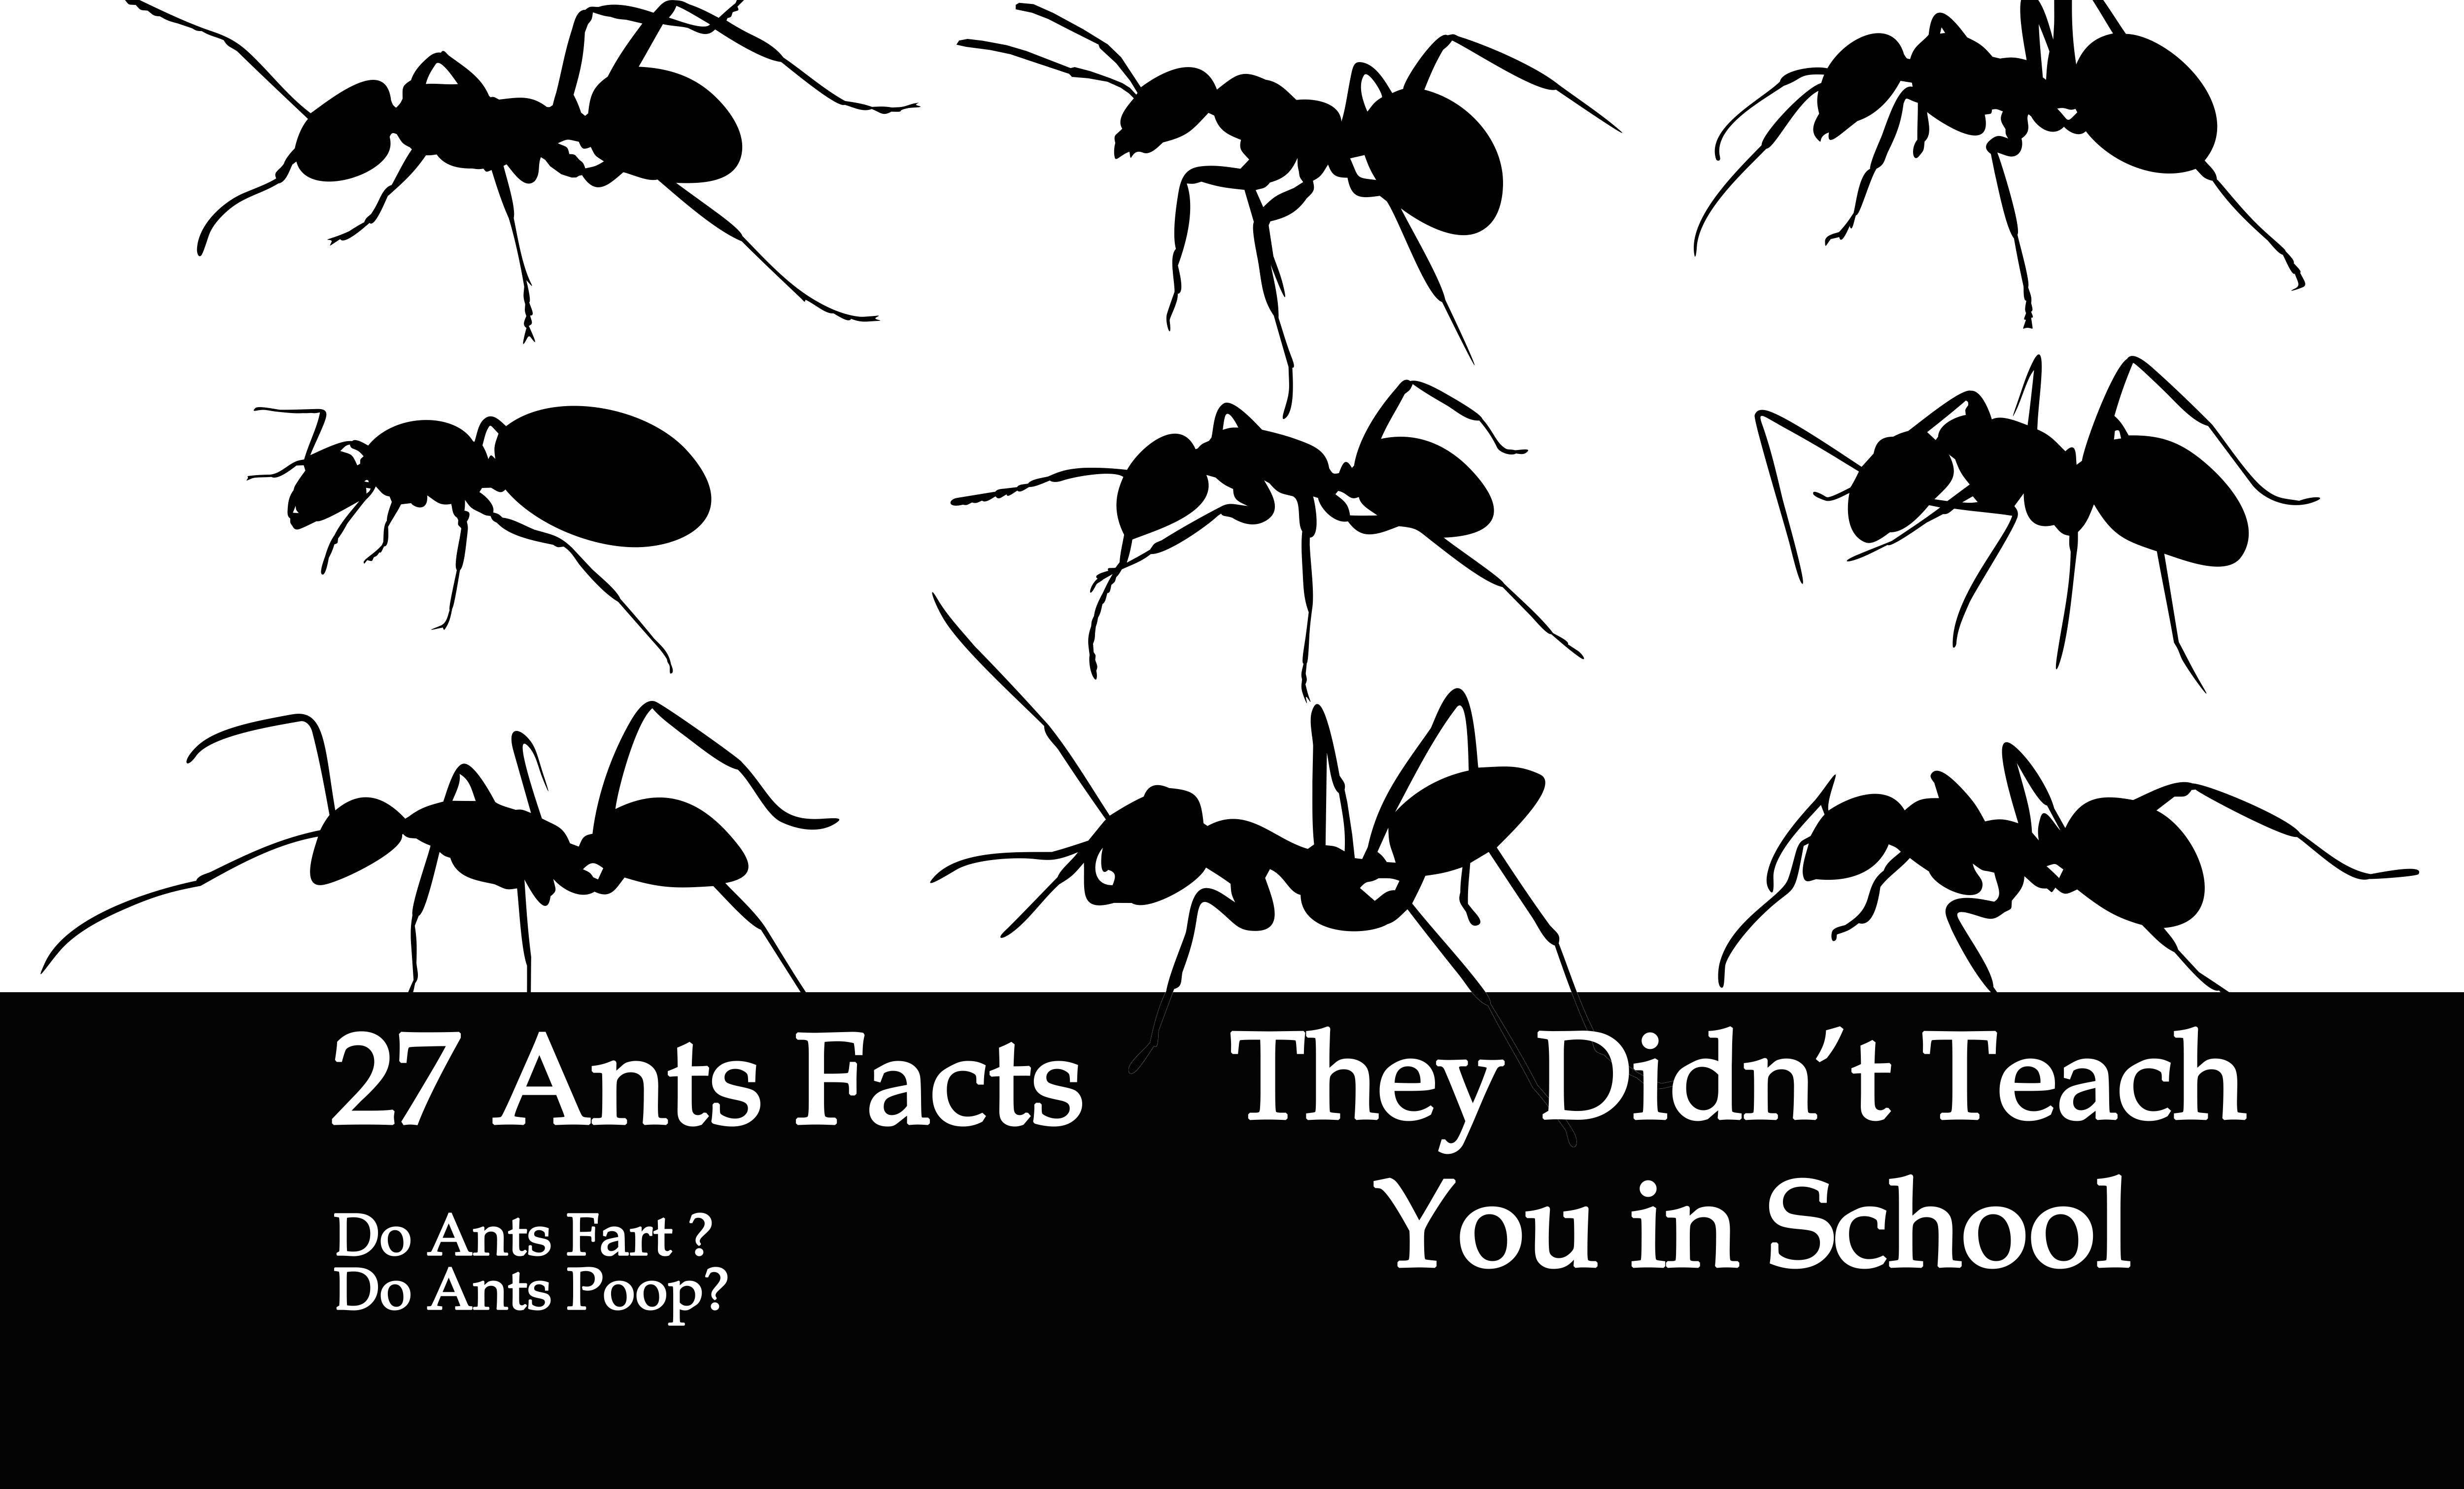 27 Surprising Ant Facts They Didn't Teach You in School